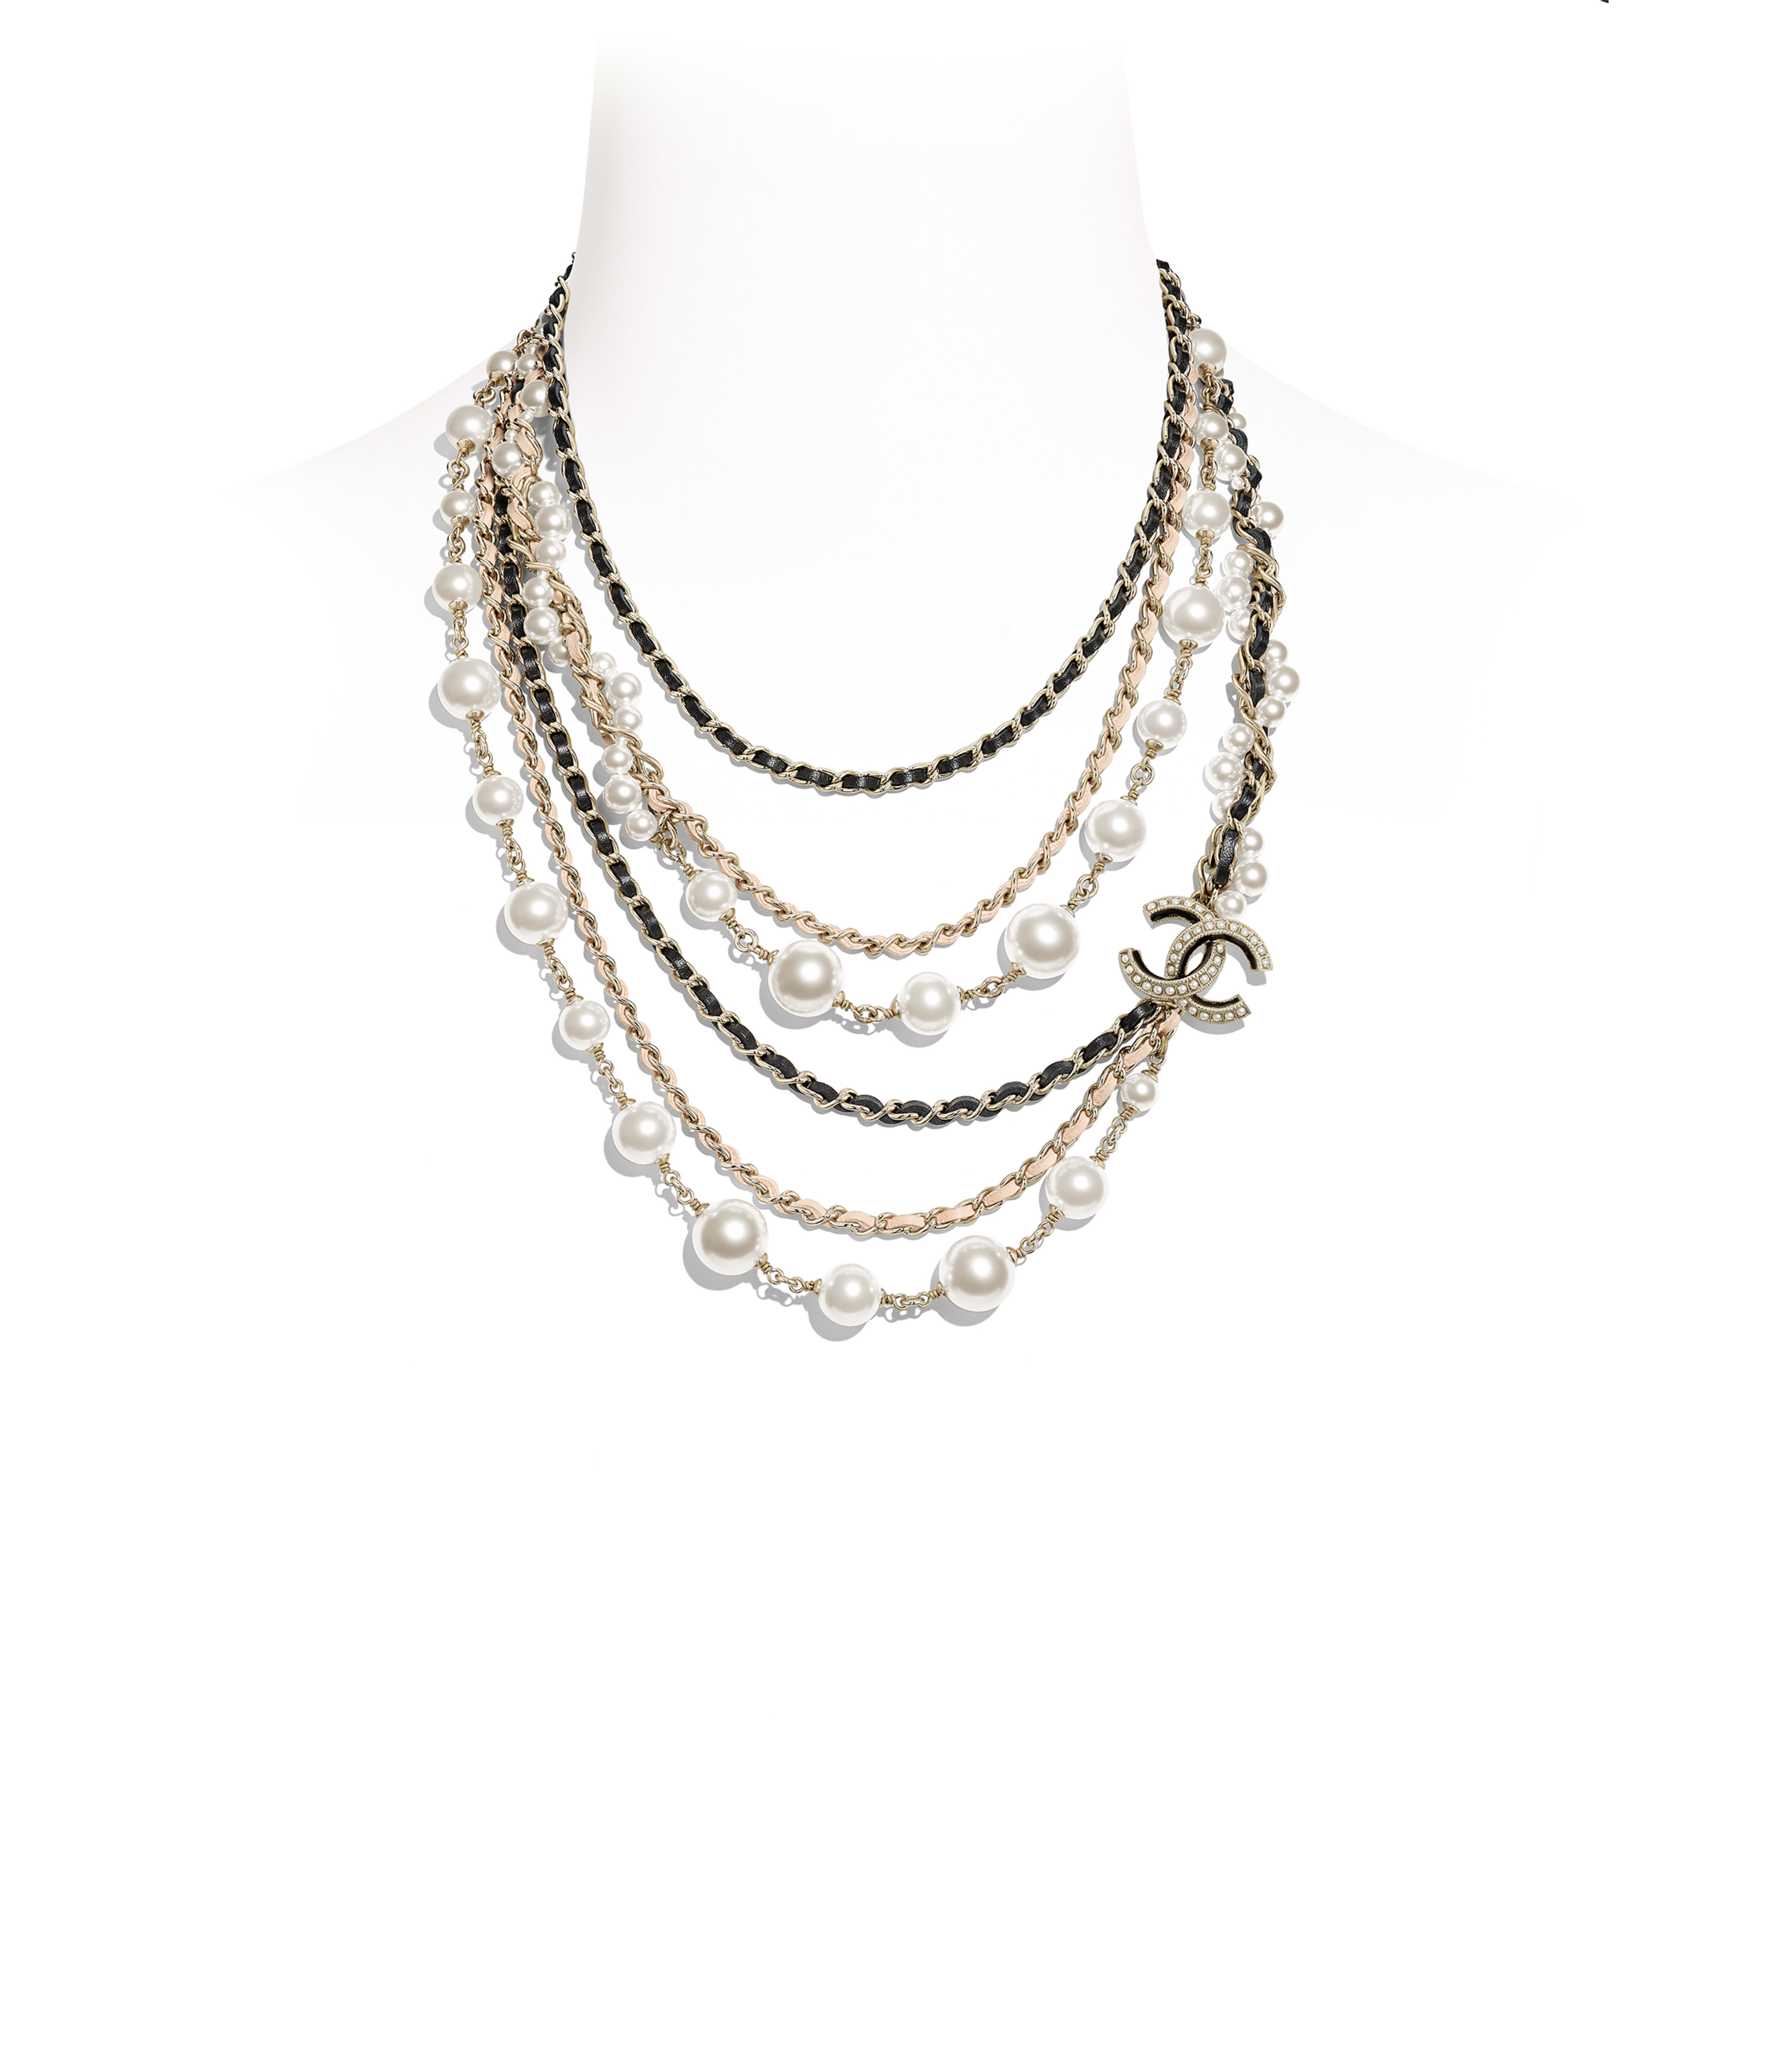 b7a4bb96a8cd5 Necklaces - Costume jewelry   CHANEL